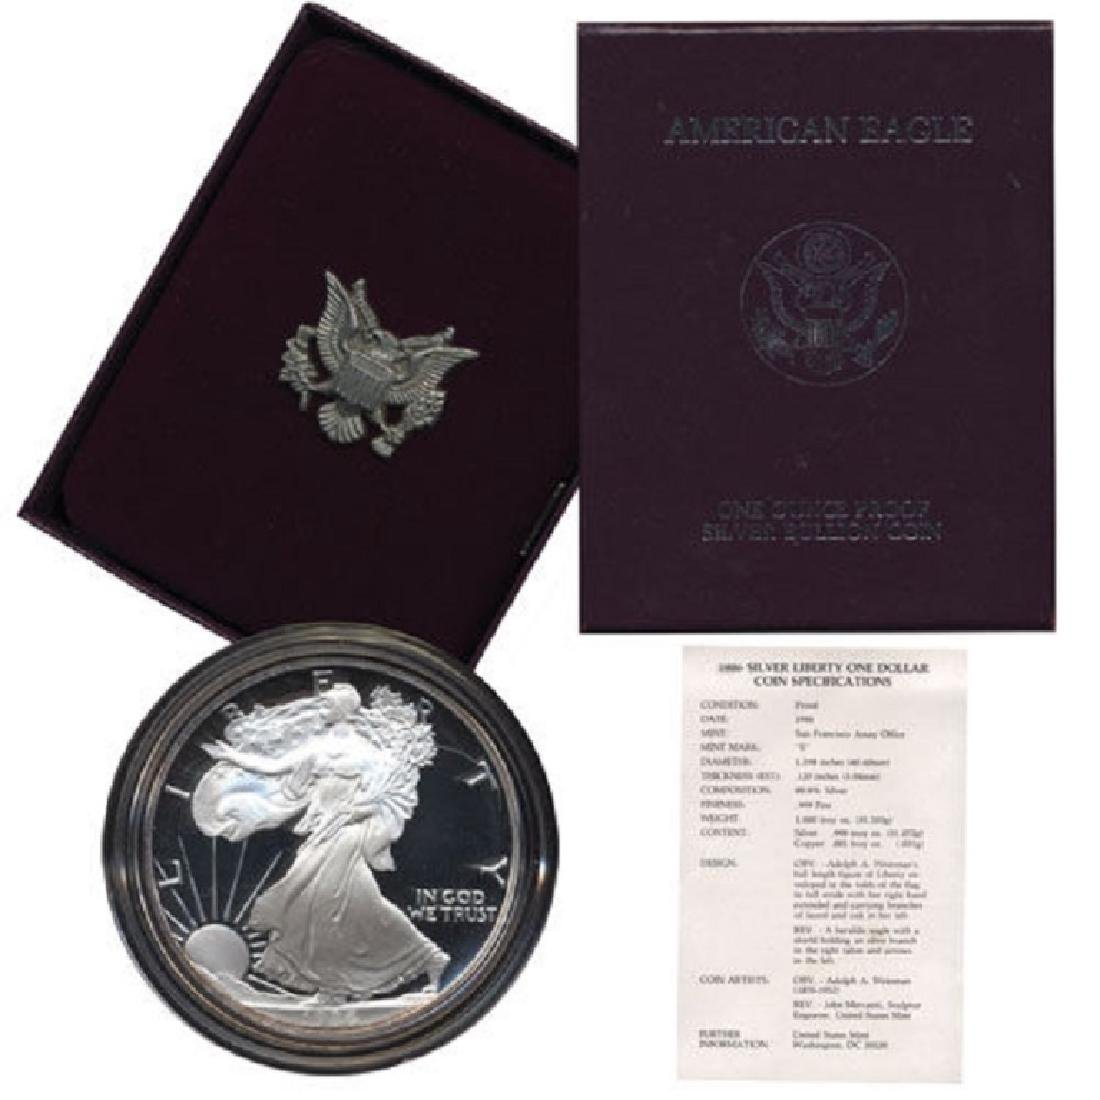 1986 US Silver Eagle - Proof - 1st Year Issue